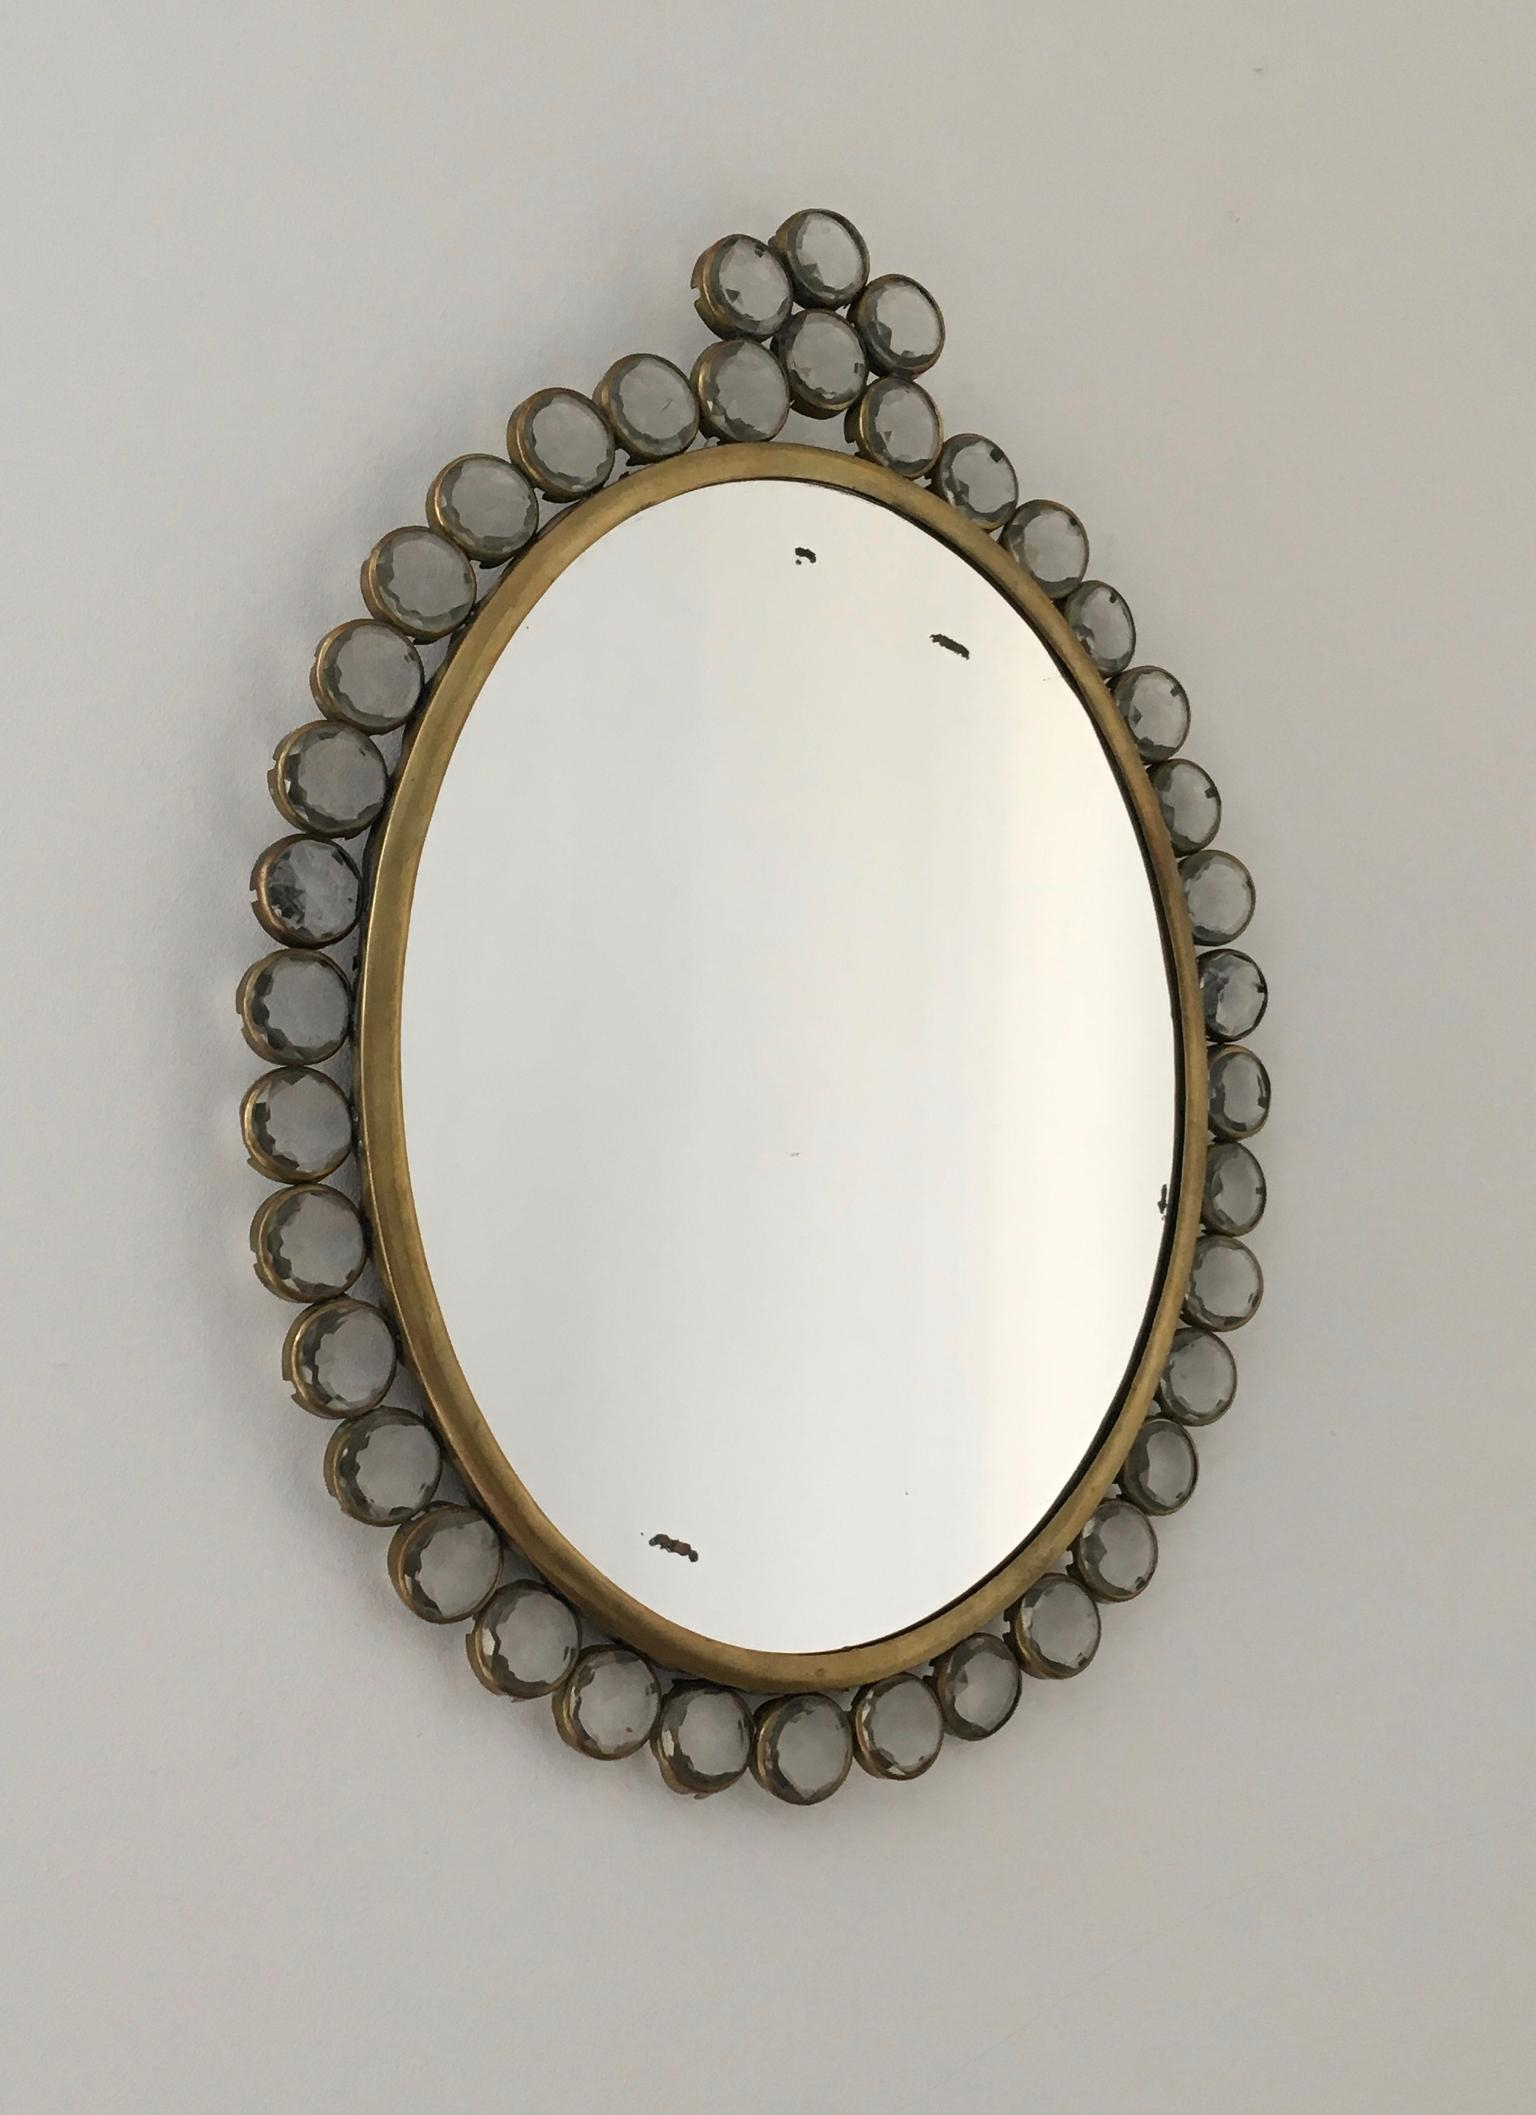 Recent Small Wall Mounted Mirror With Decorative Glass And Brass Frame, European Intended For Small Decorative Wall Mirrors (Gallery 18 of 20)